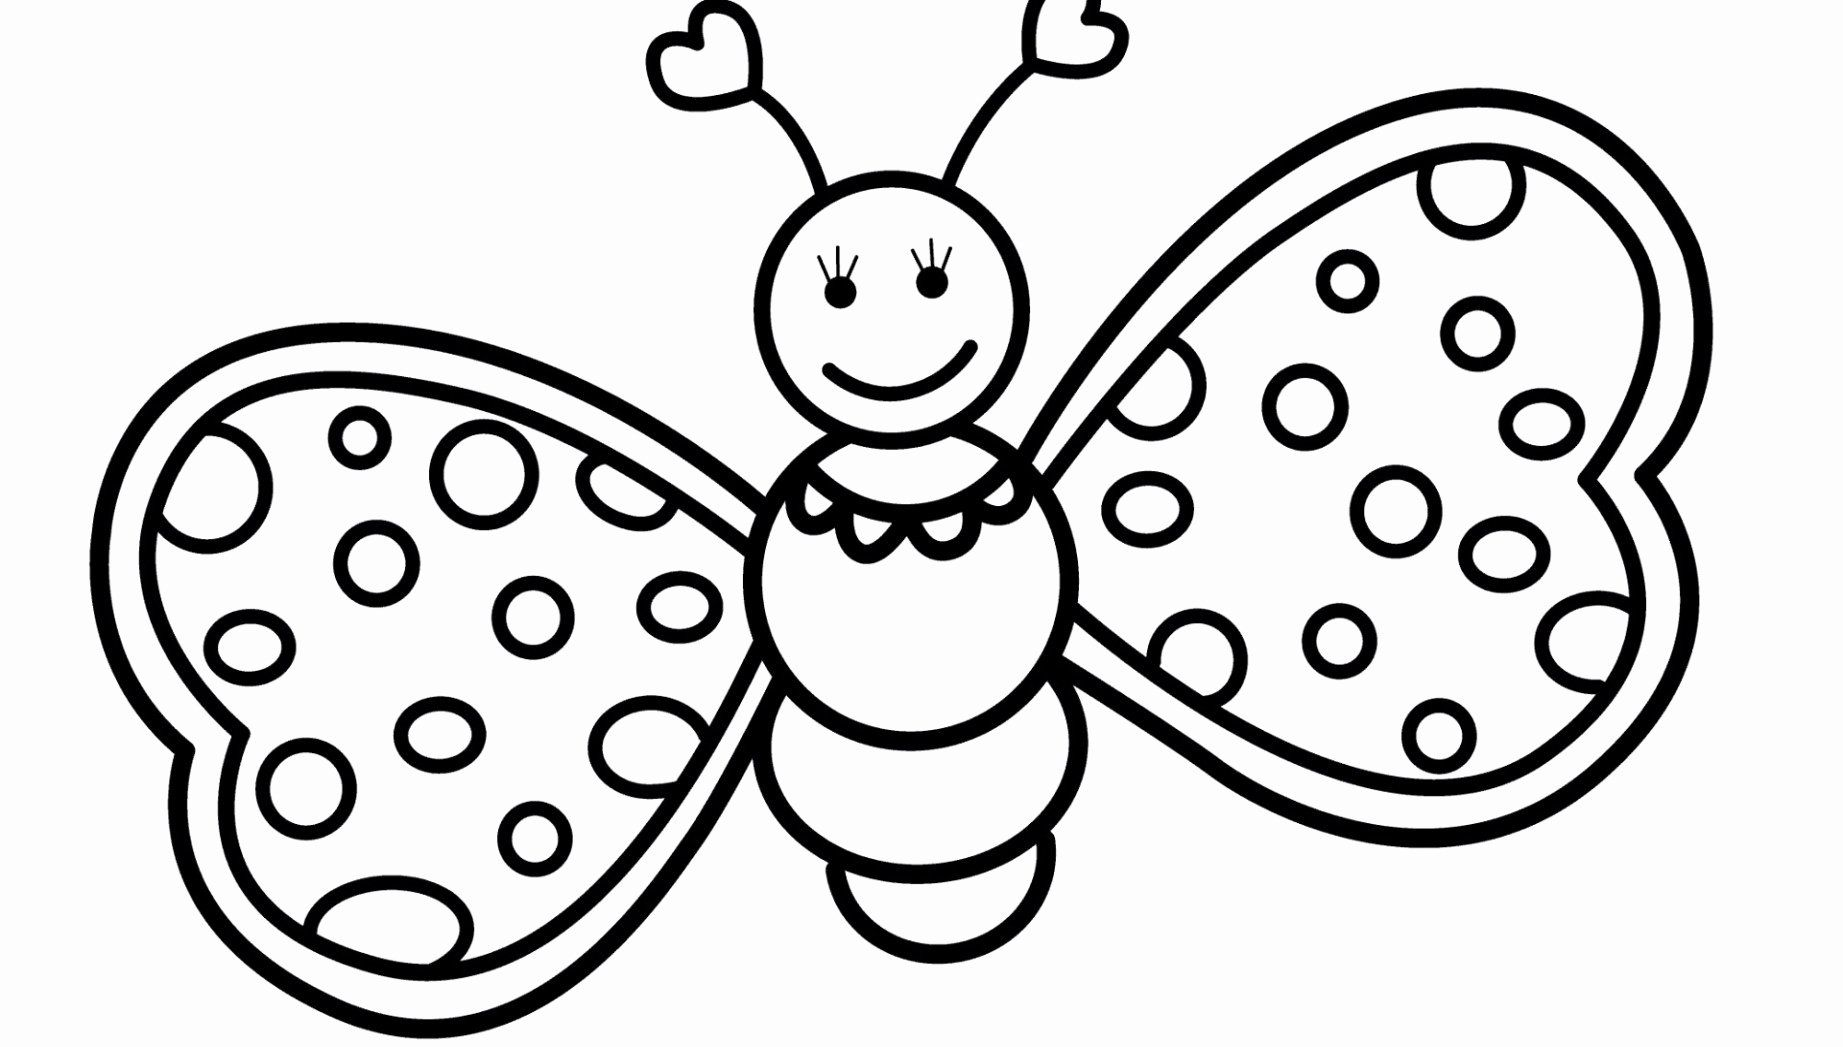 Thanksgiving Pumpkin Coloring Pages Awesome Blank Pumpkin